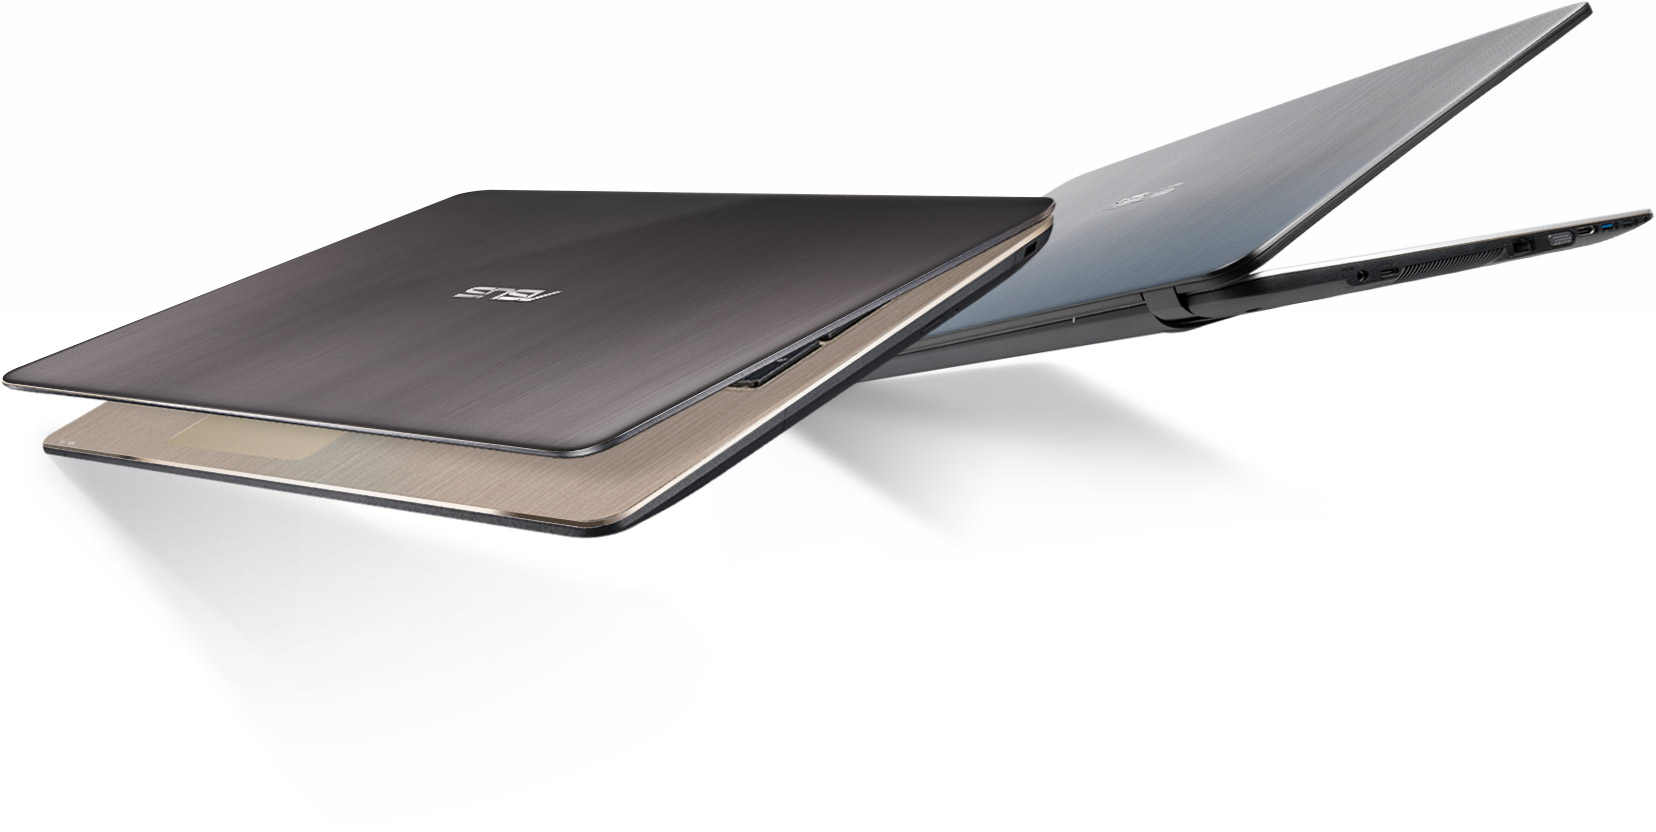 Drivers for ASUS VivoBook X540LJ ICE Sound